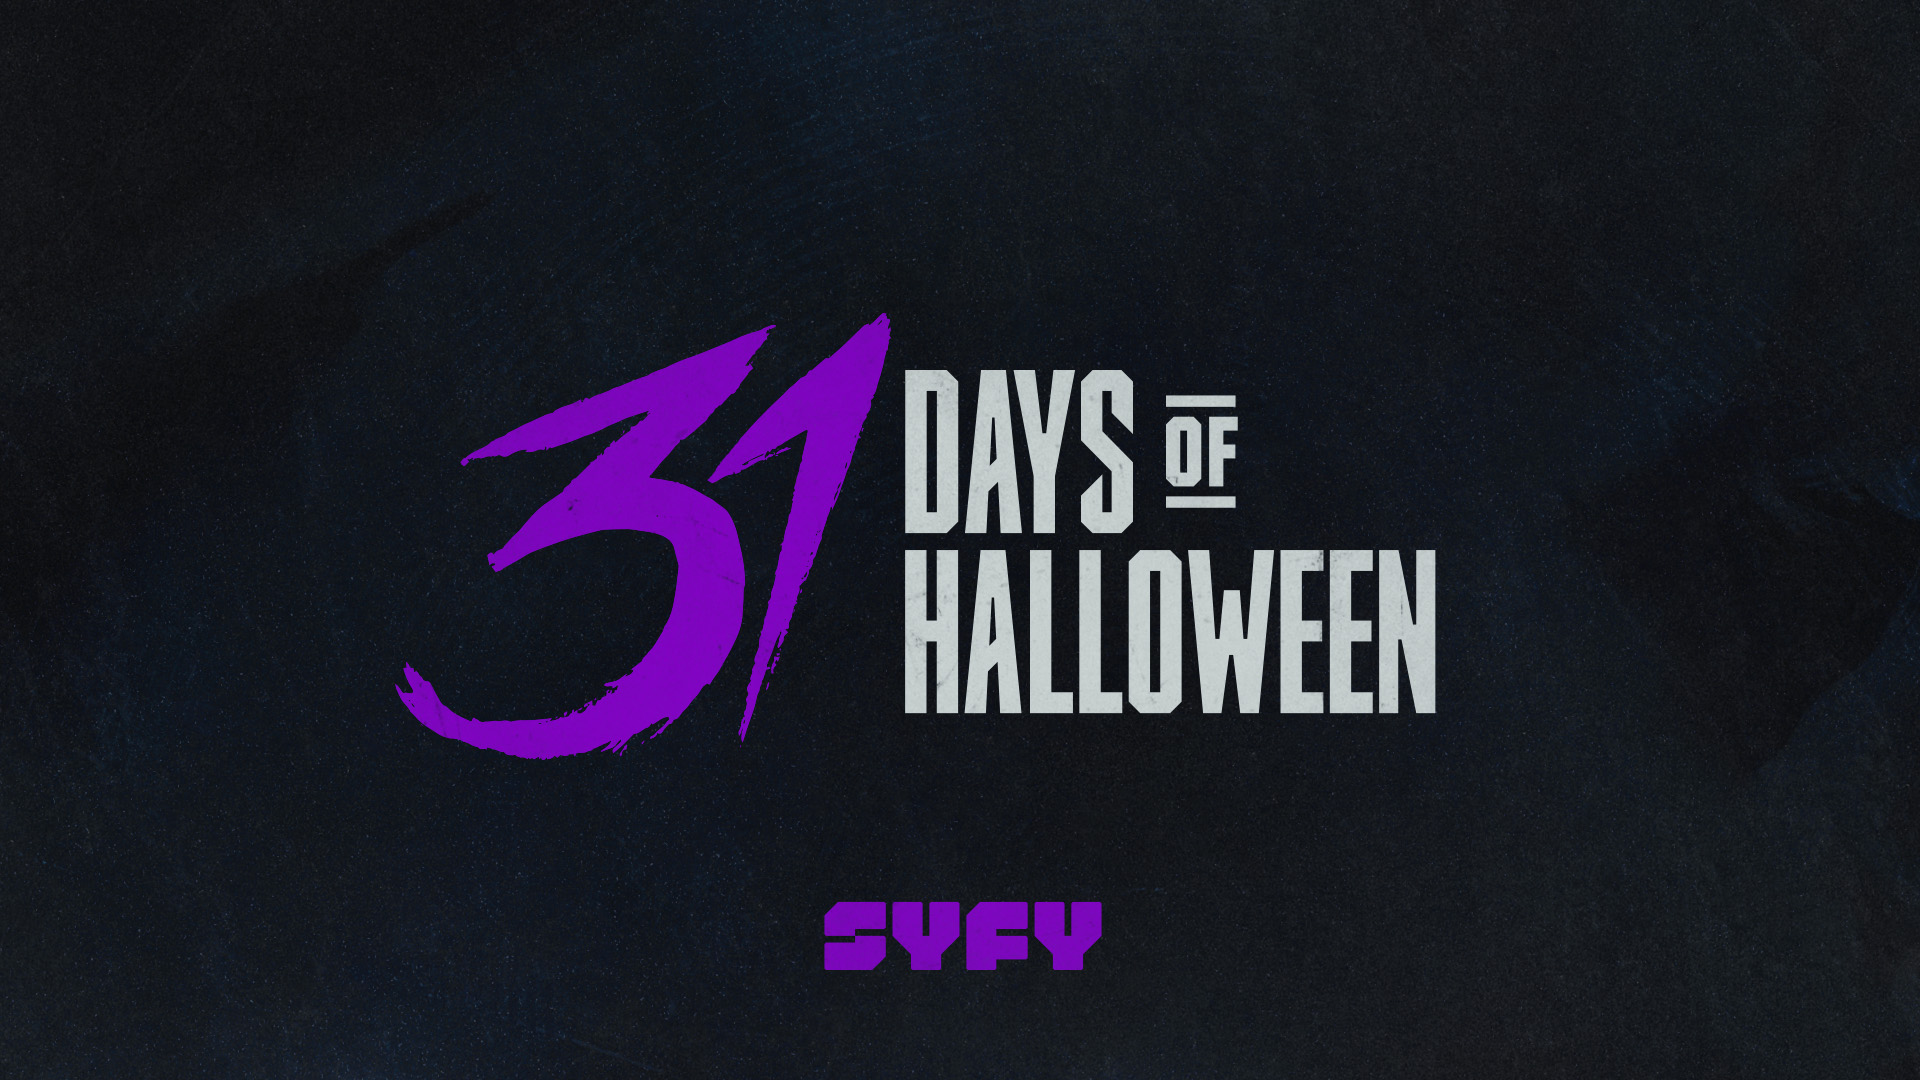 syfy announces 31 days of halloween lineup with five brand new original horror films bloody. Black Bedroom Furniture Sets. Home Design Ideas